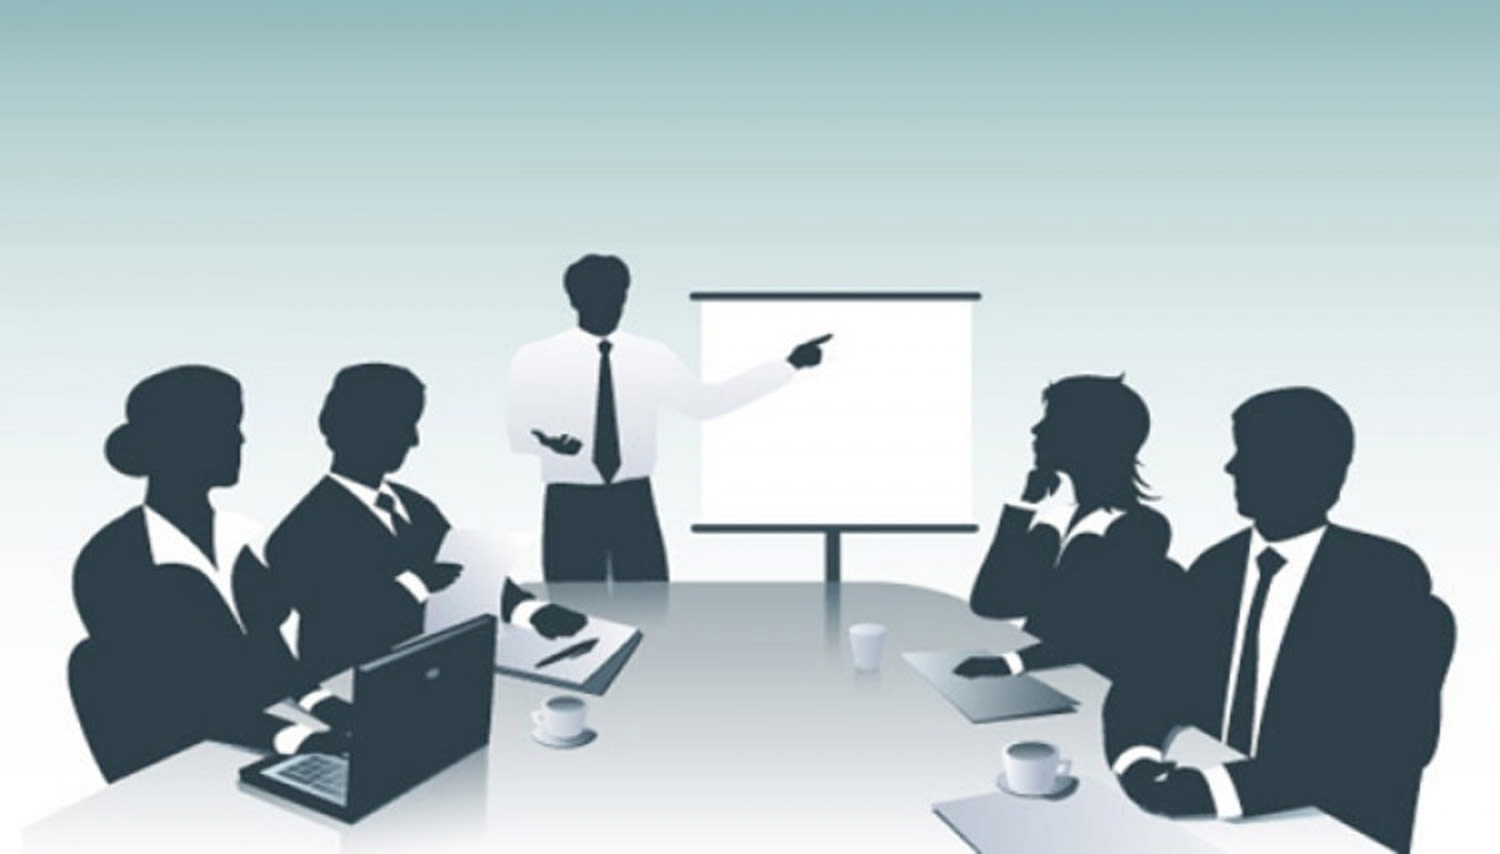 5 Tips for an Effective PowerPoint Presentation